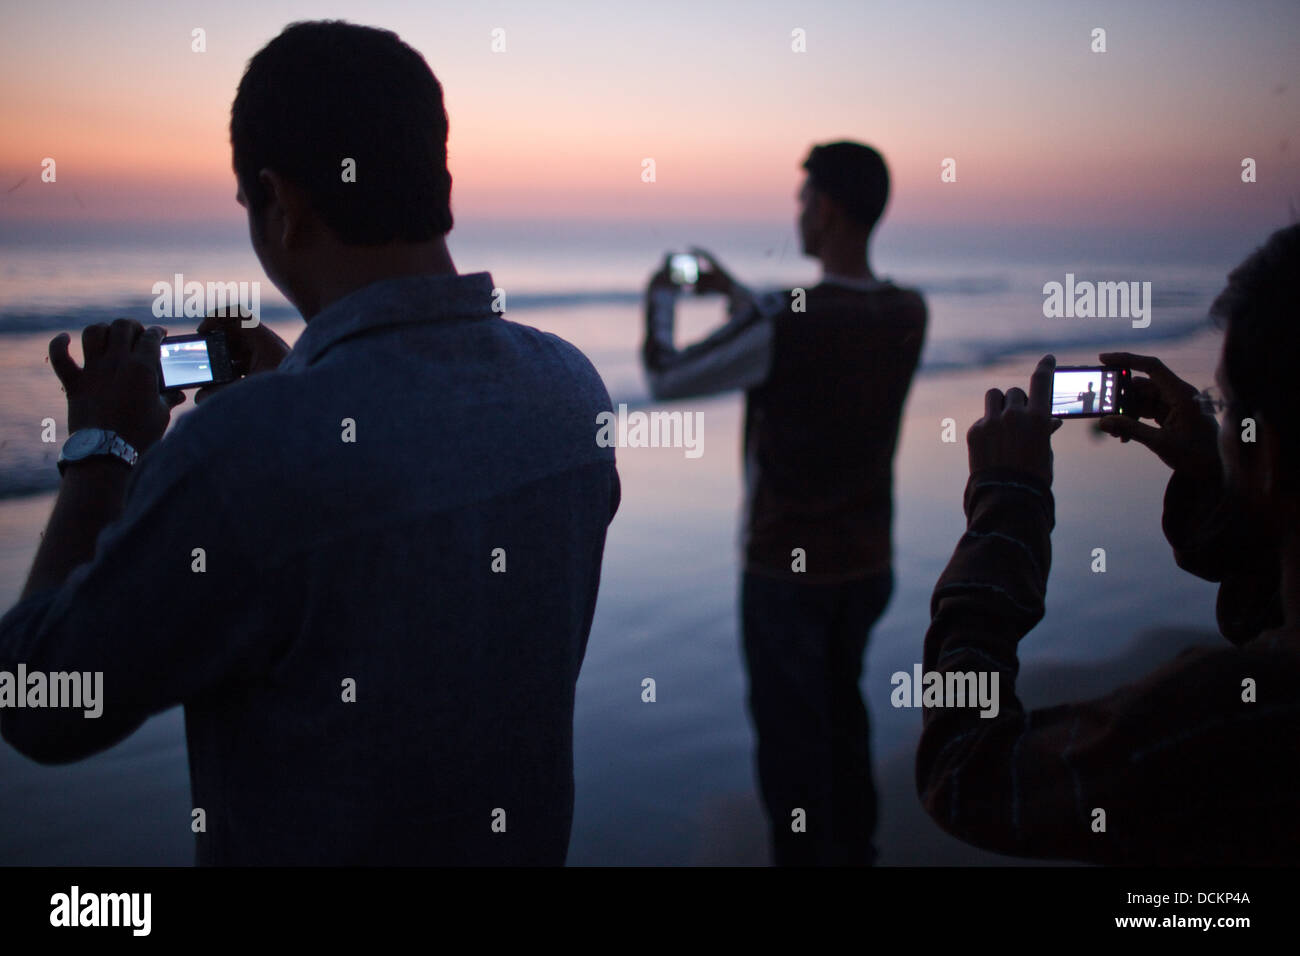 Bangladeshi tourists take photos of the sunset with their mobile phone cameras on the beach in Cox's Bazar, - Stock Image